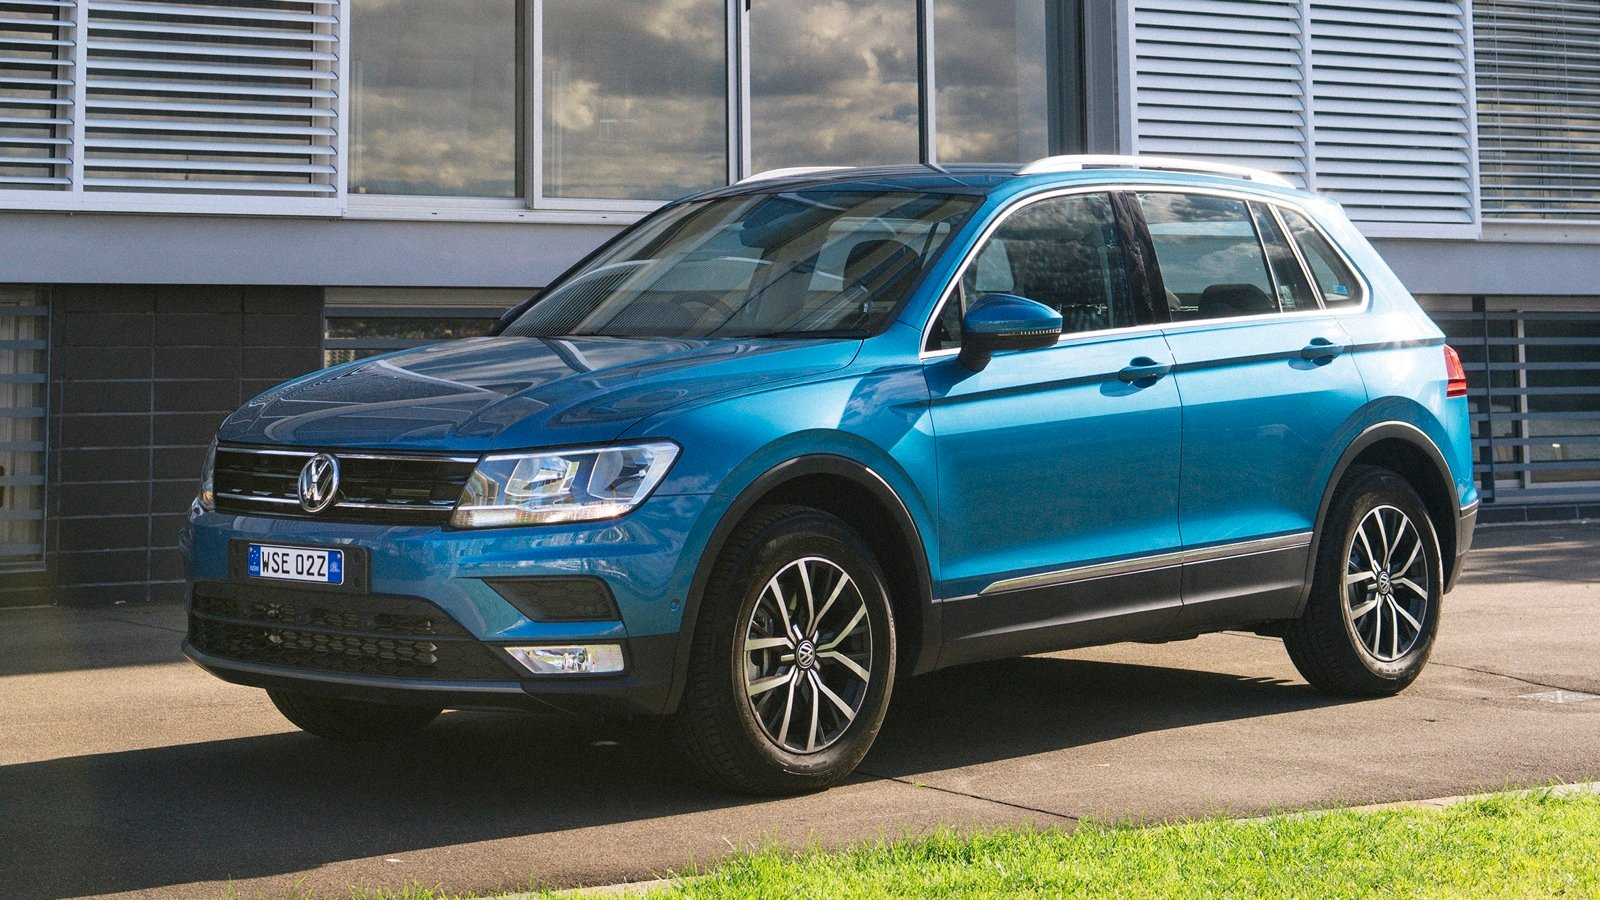 volkswagen tiguan frankfurt 2018 dodge reviews. Black Bedroom Furniture Sets. Home Design Ideas